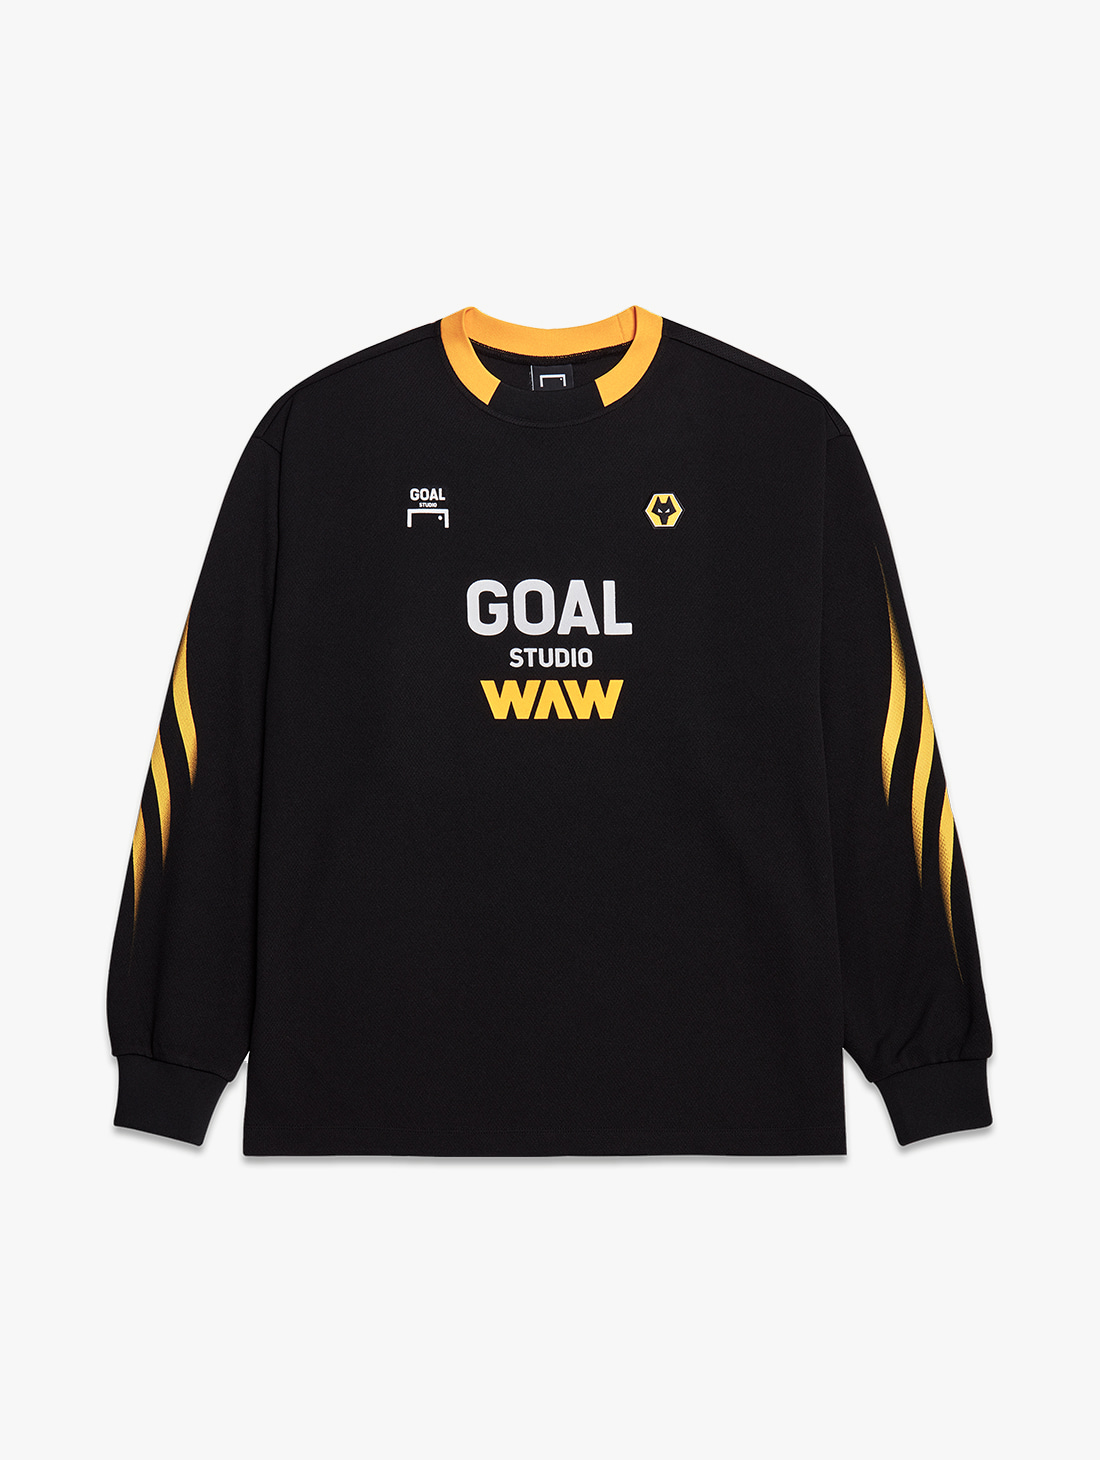 [PRE-ORDER 10% OFF] WWFC GAME SHIRT